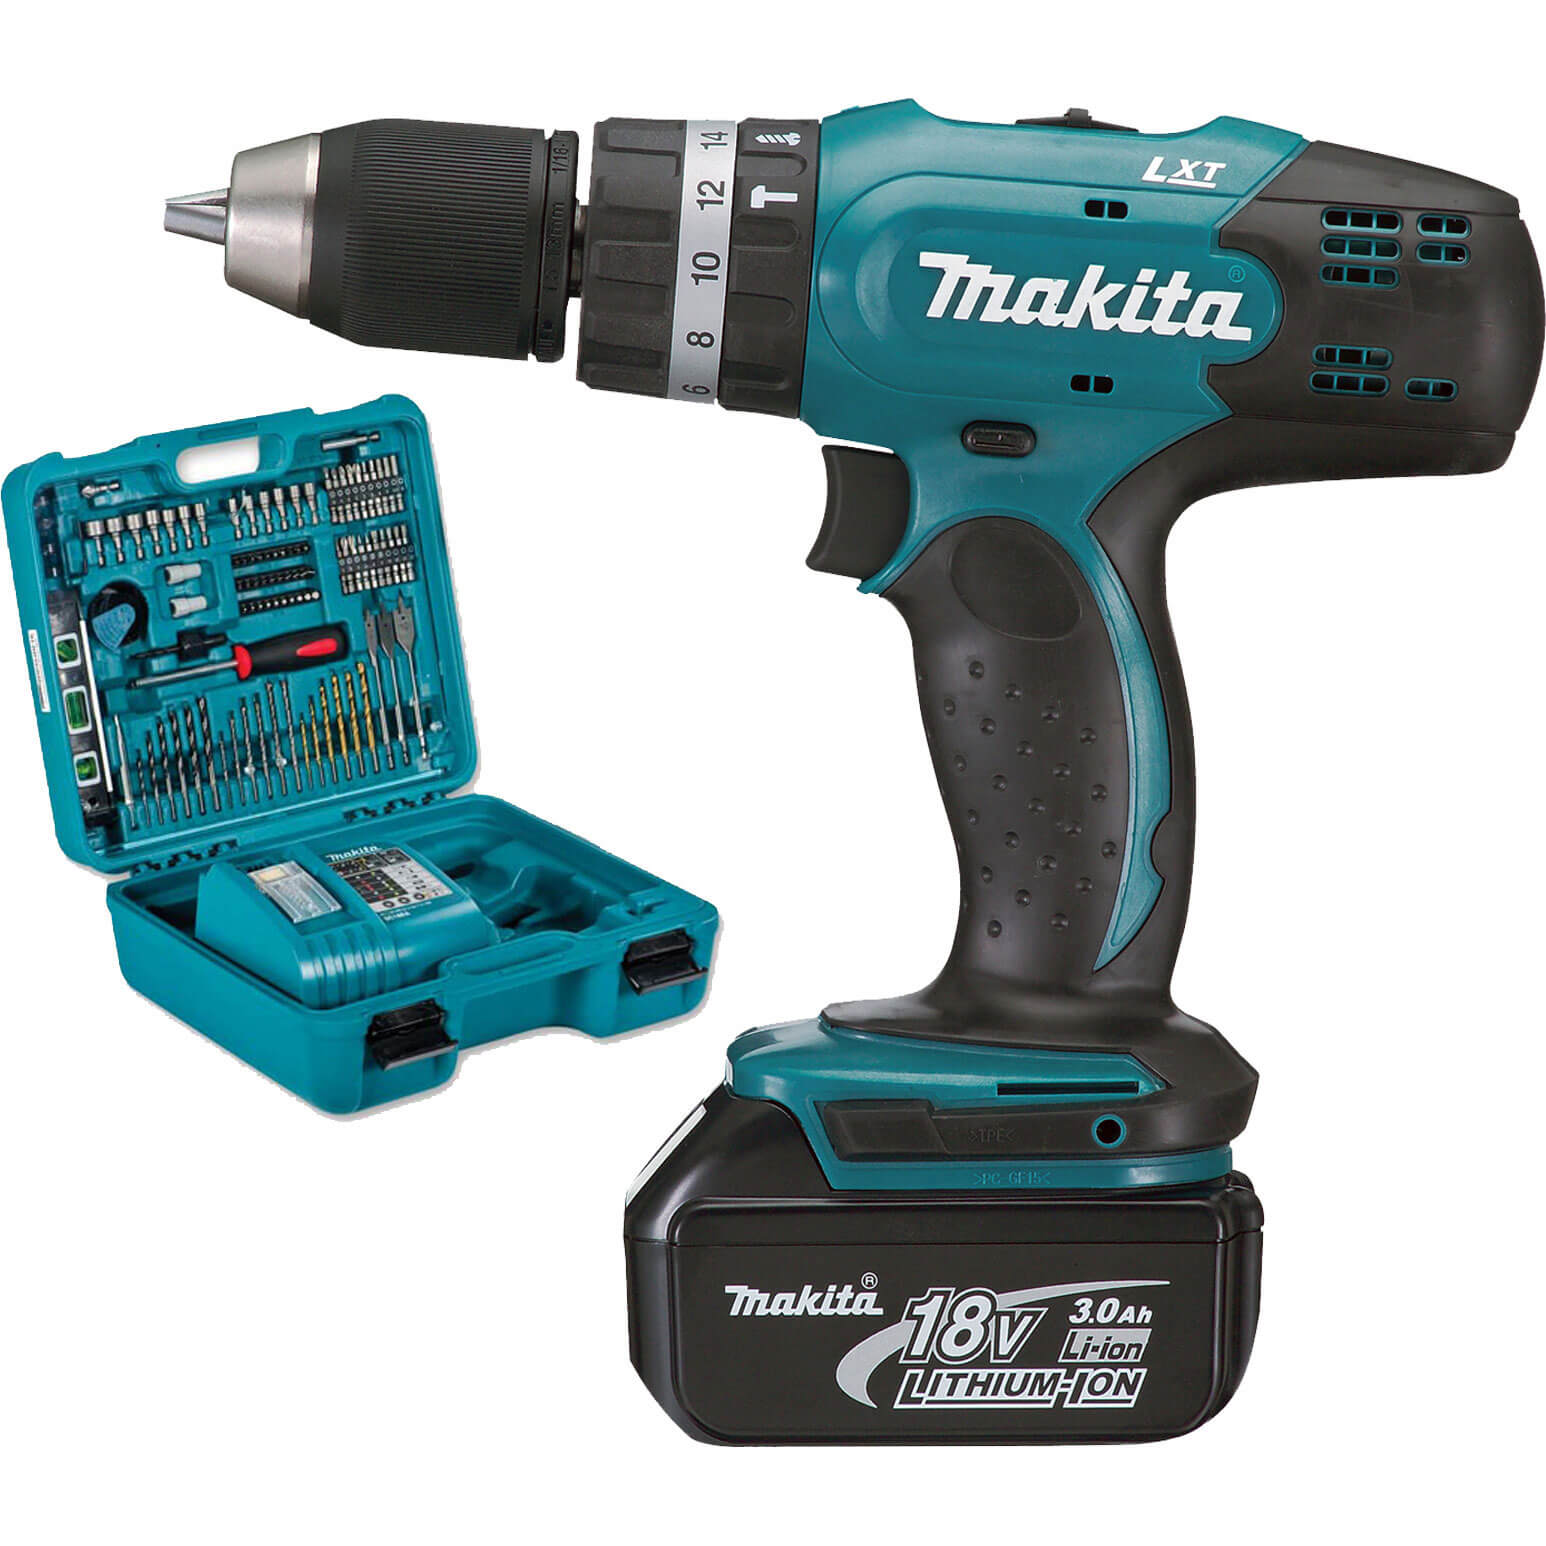 makita bhp453rfx 18v cordless combi drill with 1 lithium ion battery 3ah 101 piece accessory set. Black Bedroom Furniture Sets. Home Design Ideas